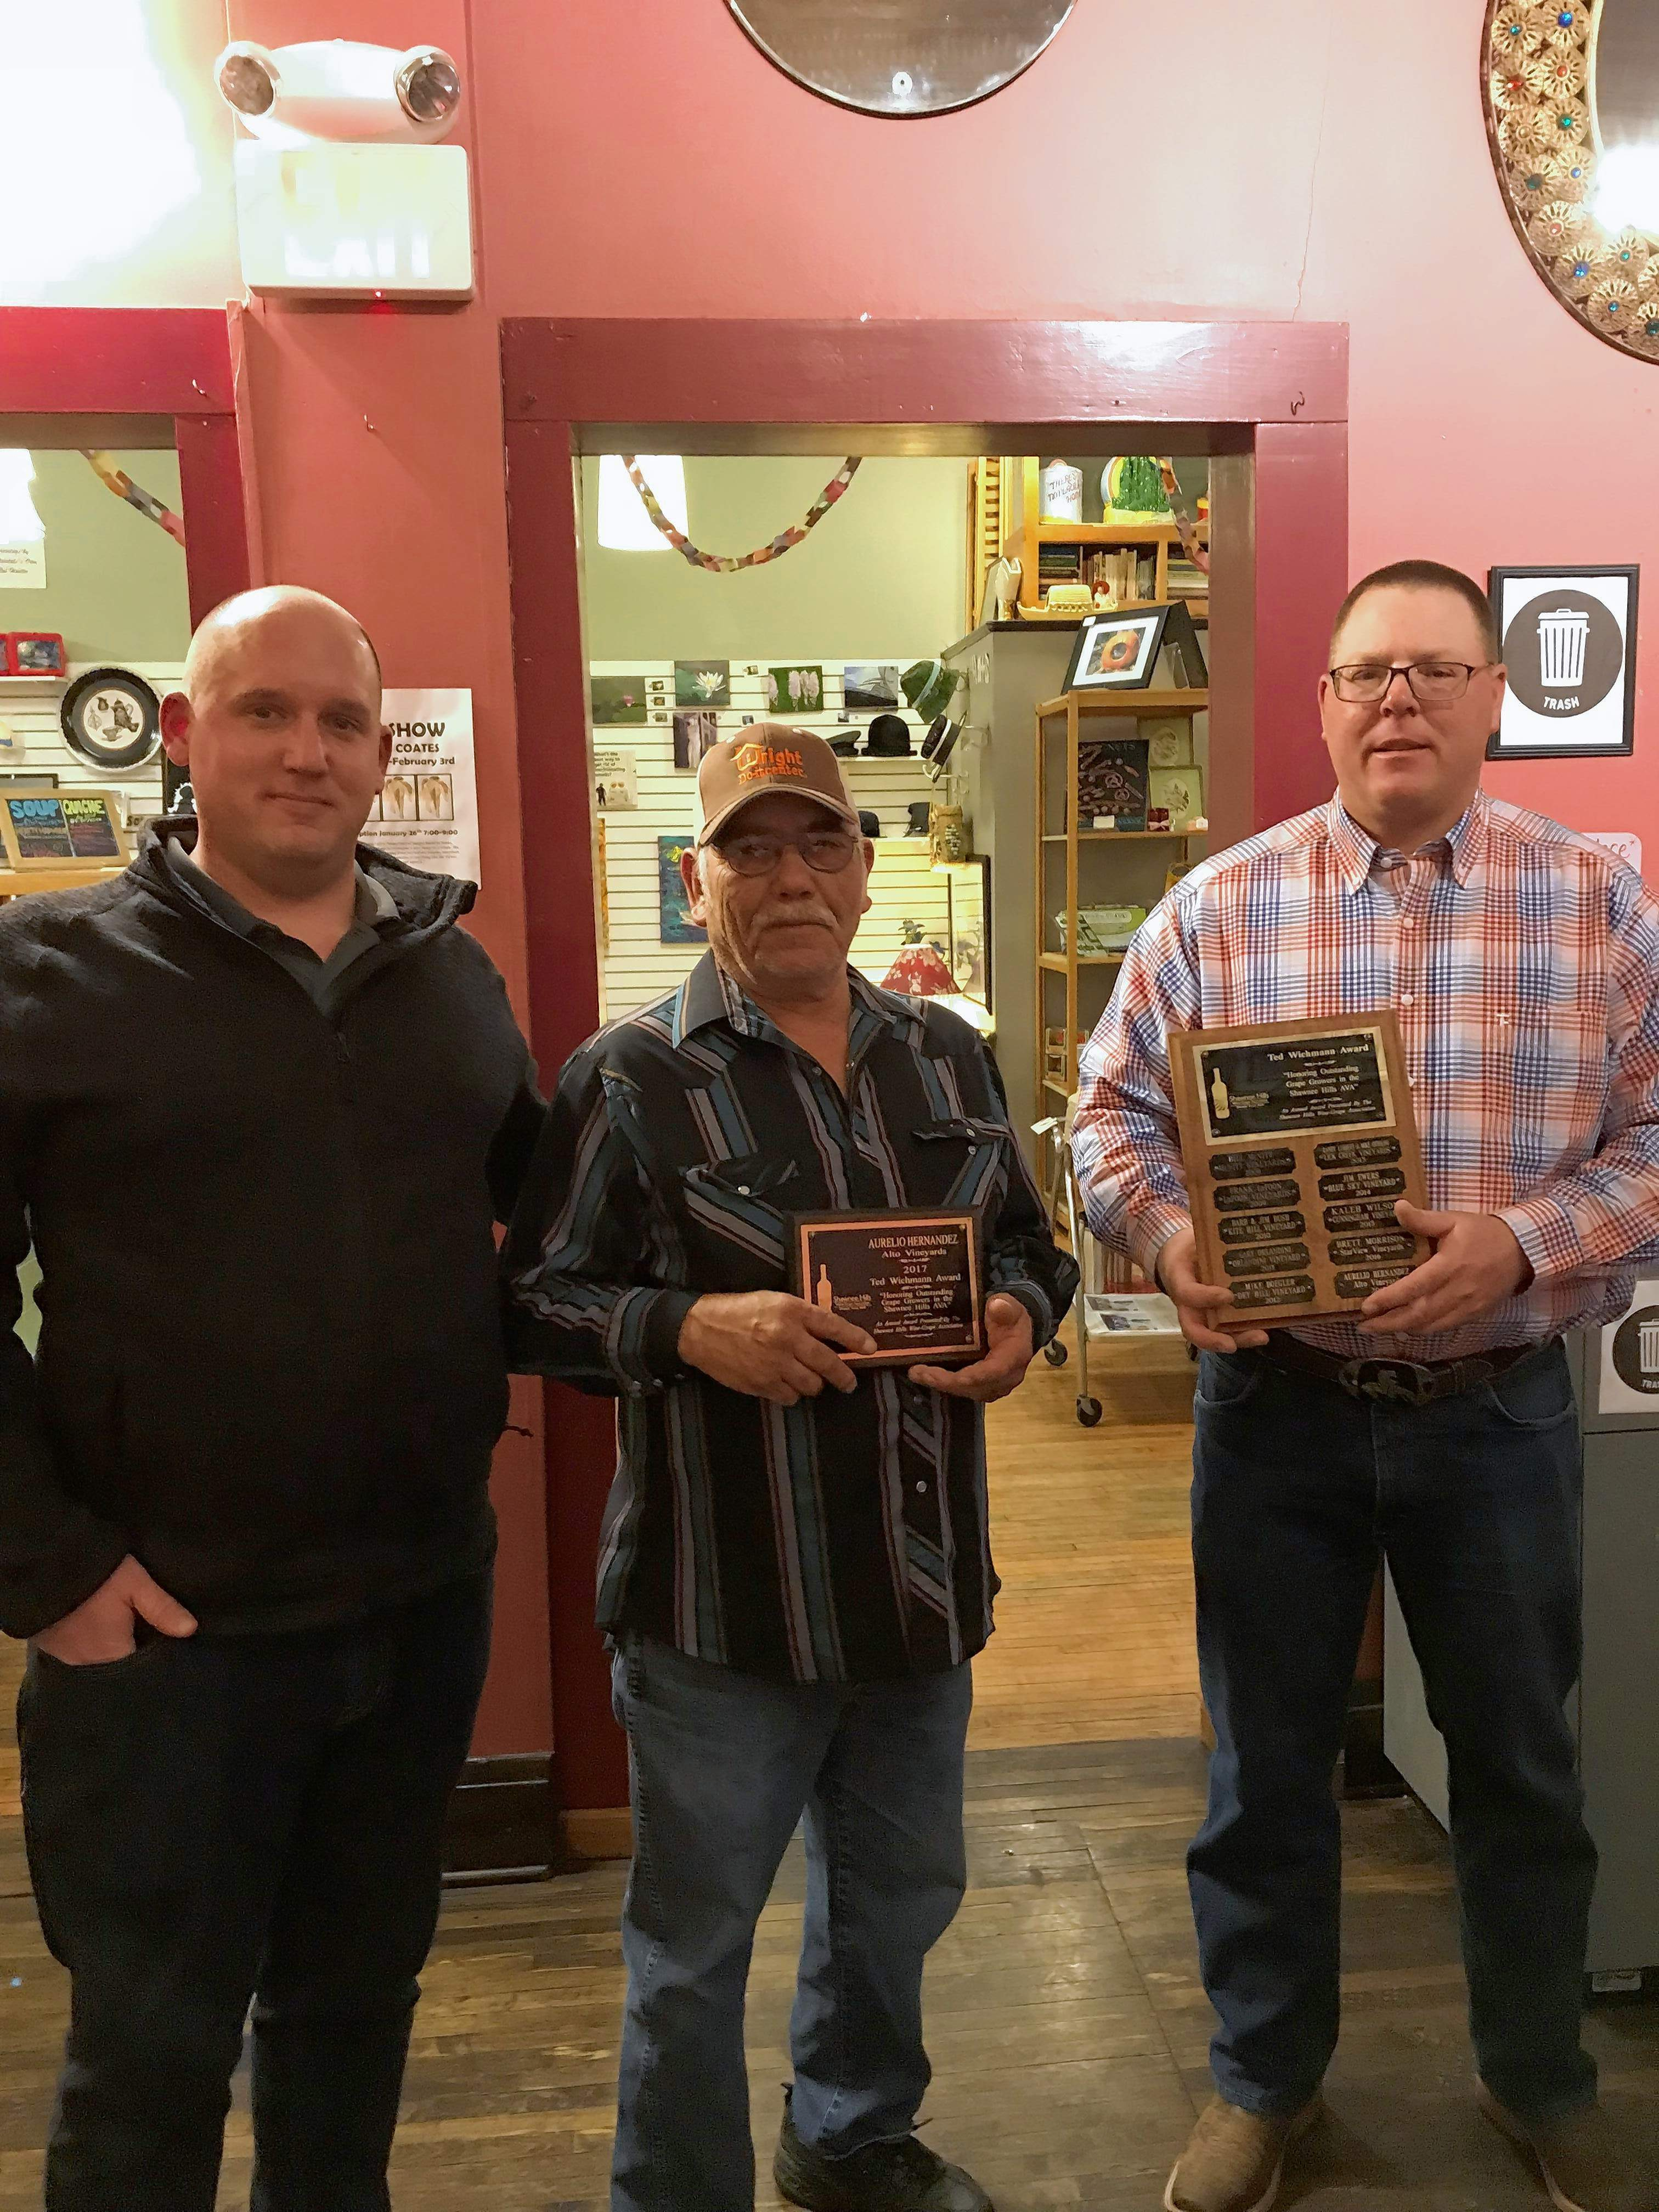 Aurelio Hernendez of Alto Vineyards was honored last week with the Ted Wichmann Grape Grower of the Year Award. Pictured left to right are Scott Albert of Kite Hill Vineyards, Hernandez, and Bill McNitt of McNitt Growers.